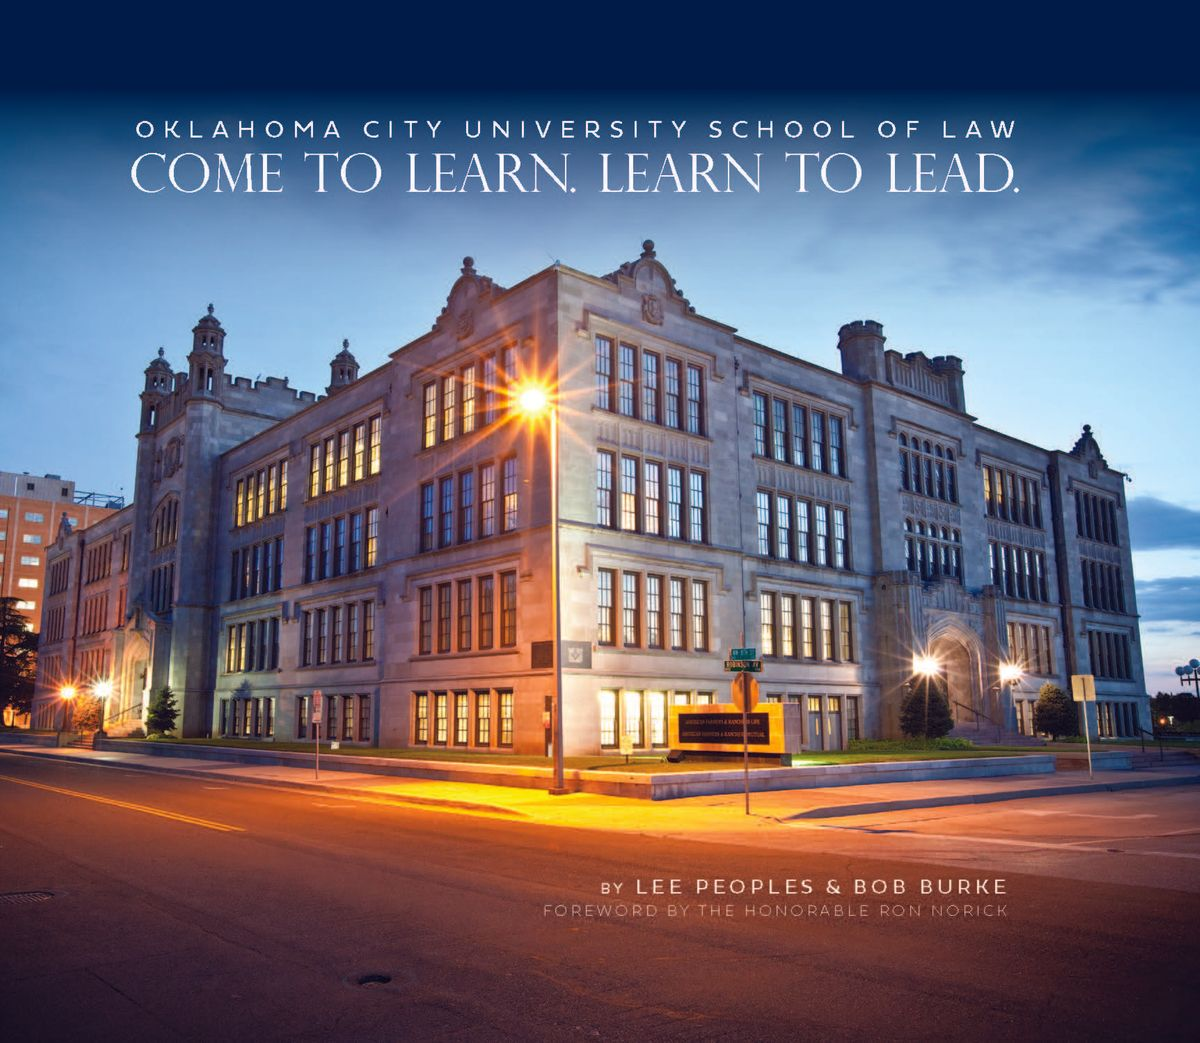 OCU SCHOOL OF LAW FRONT COVER.jpg